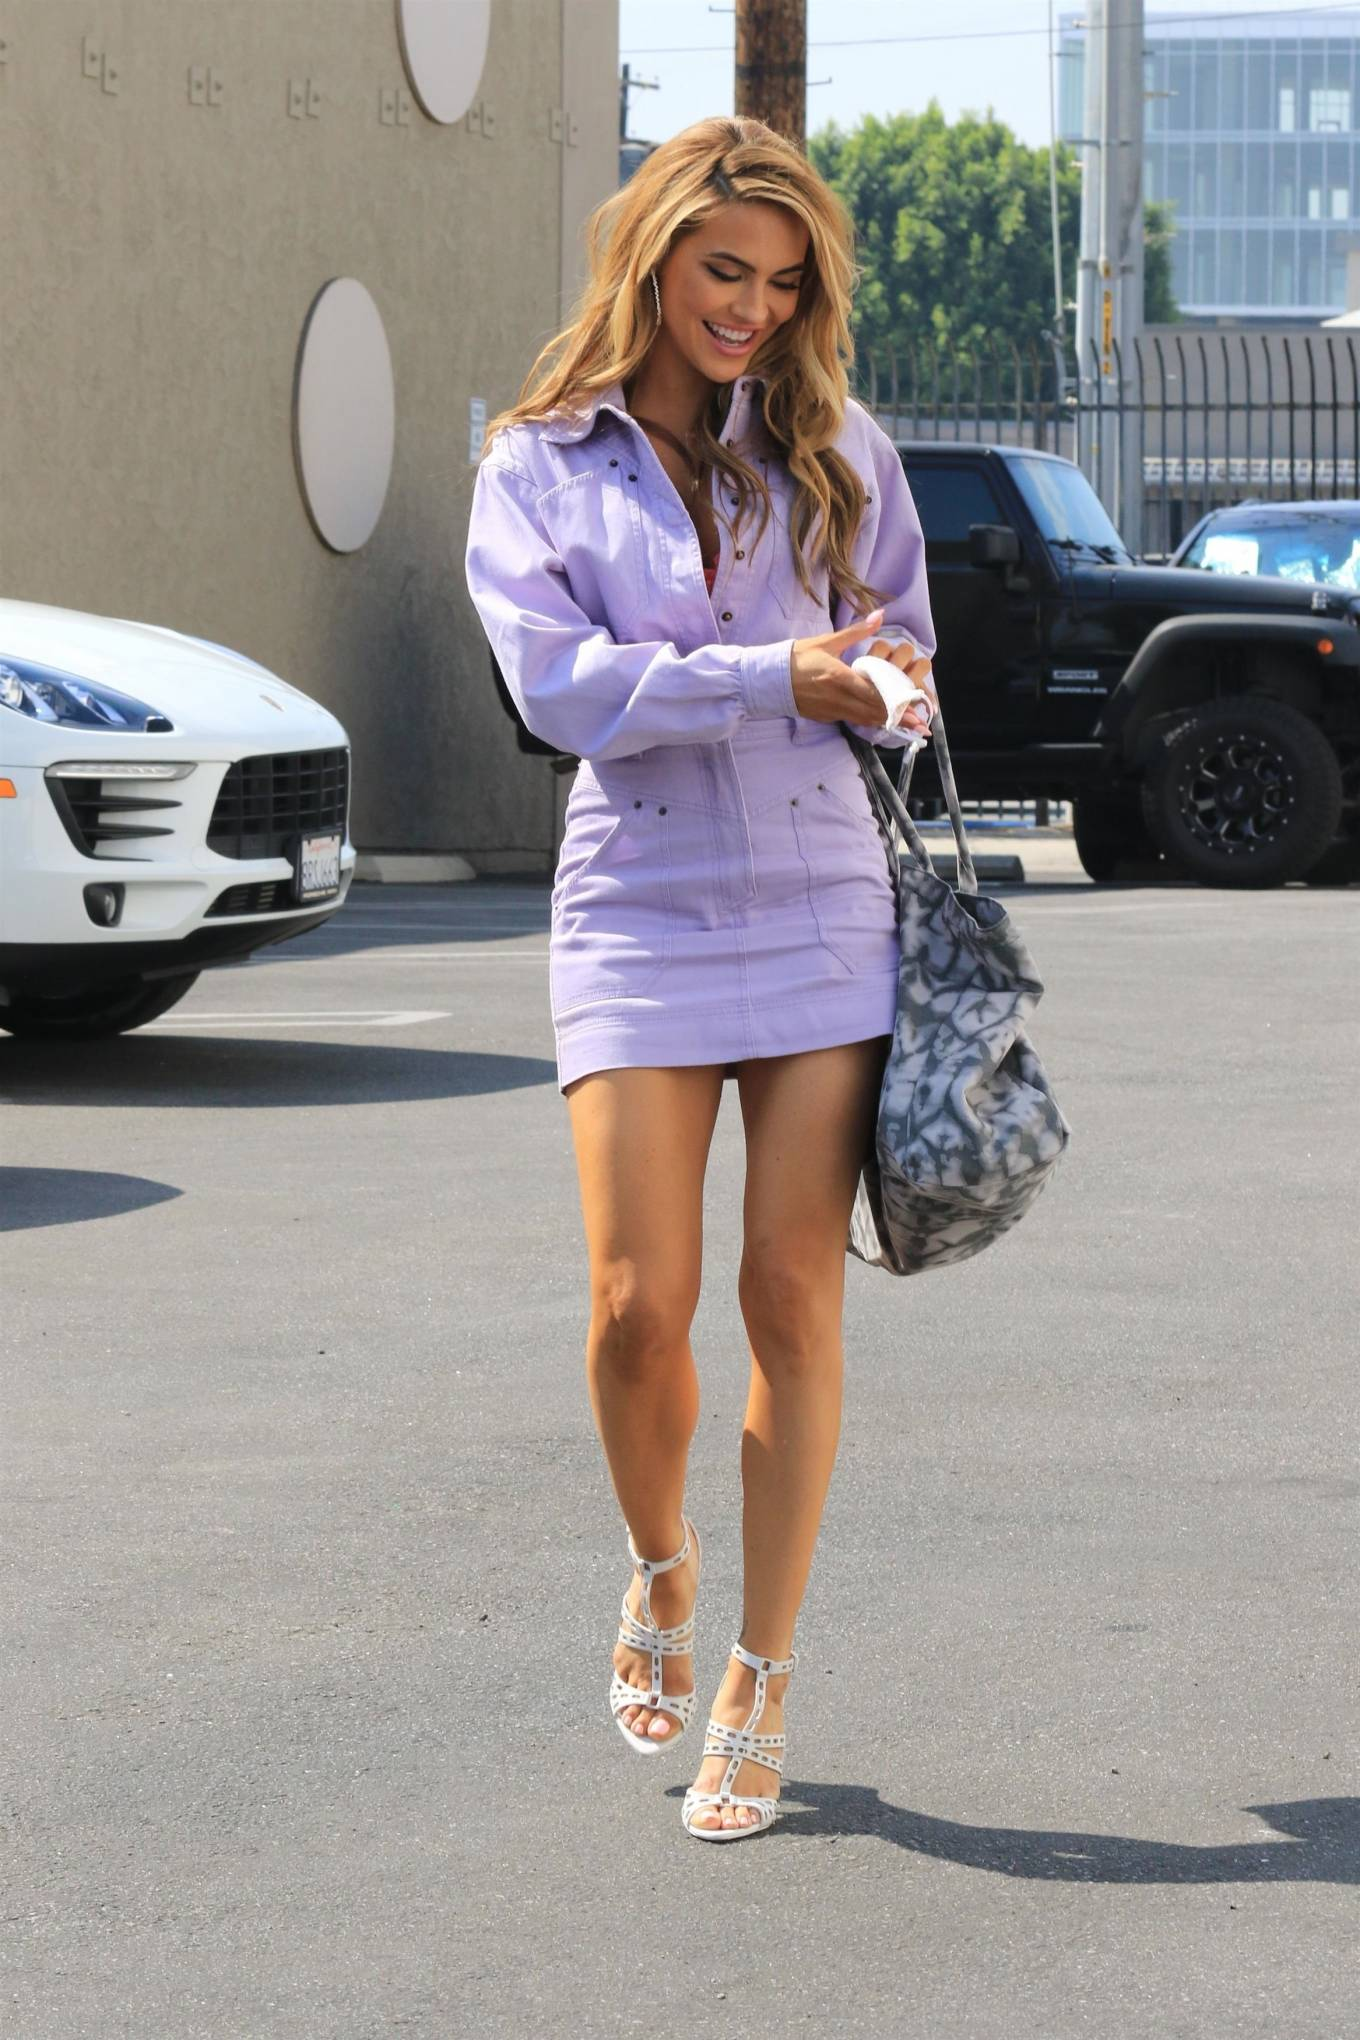 Chrishell Stause - outside the Dancing With The Stars rehearsal studio in Los Angeles